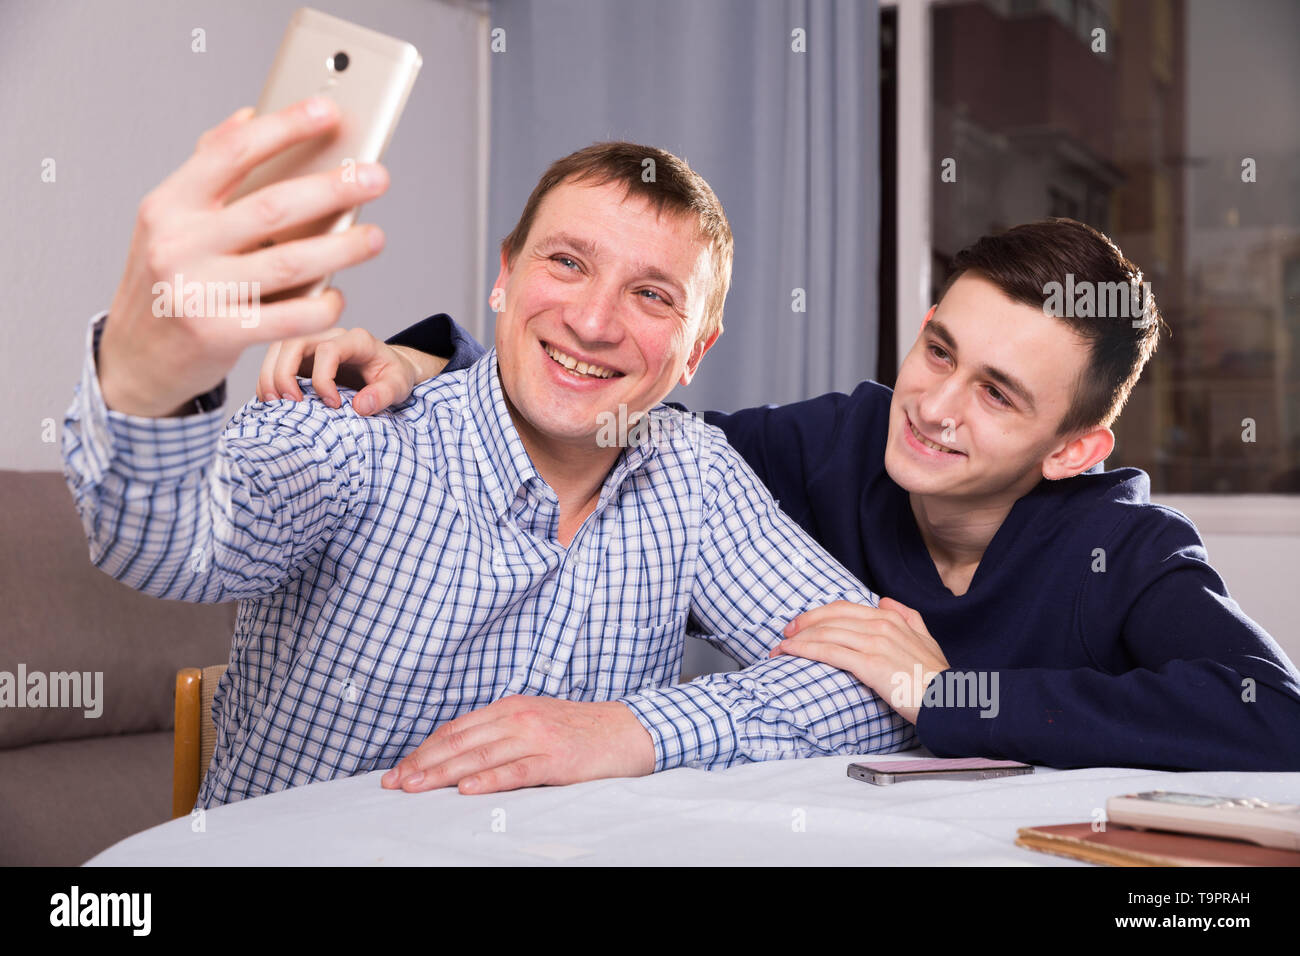 Man with his adult son are taking selfie together at the home. - Stock Image